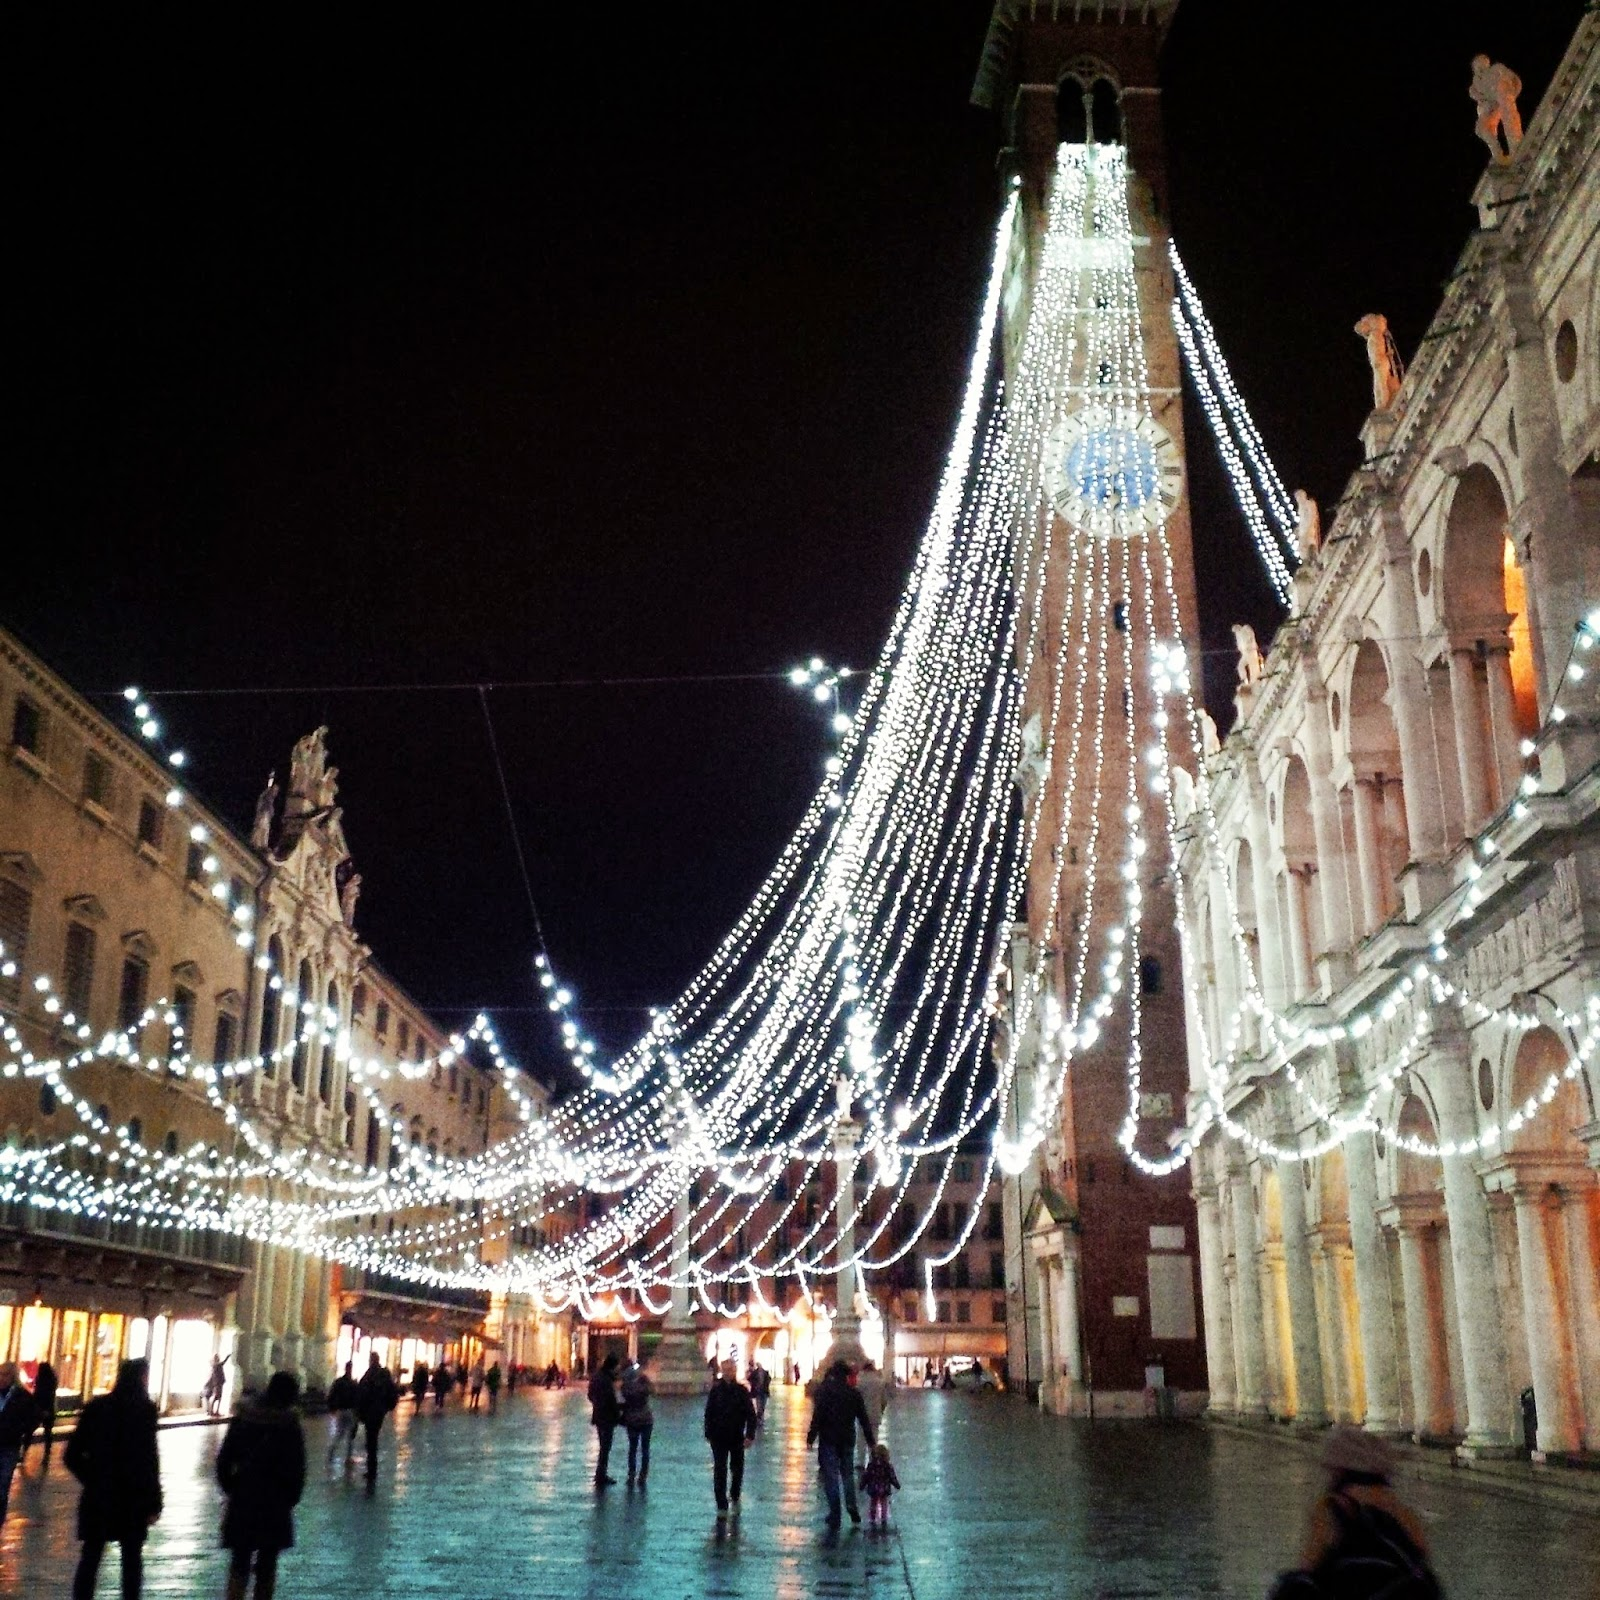 Christmas lights draped from the clocktower of Palladio's Basilica in Vicenza